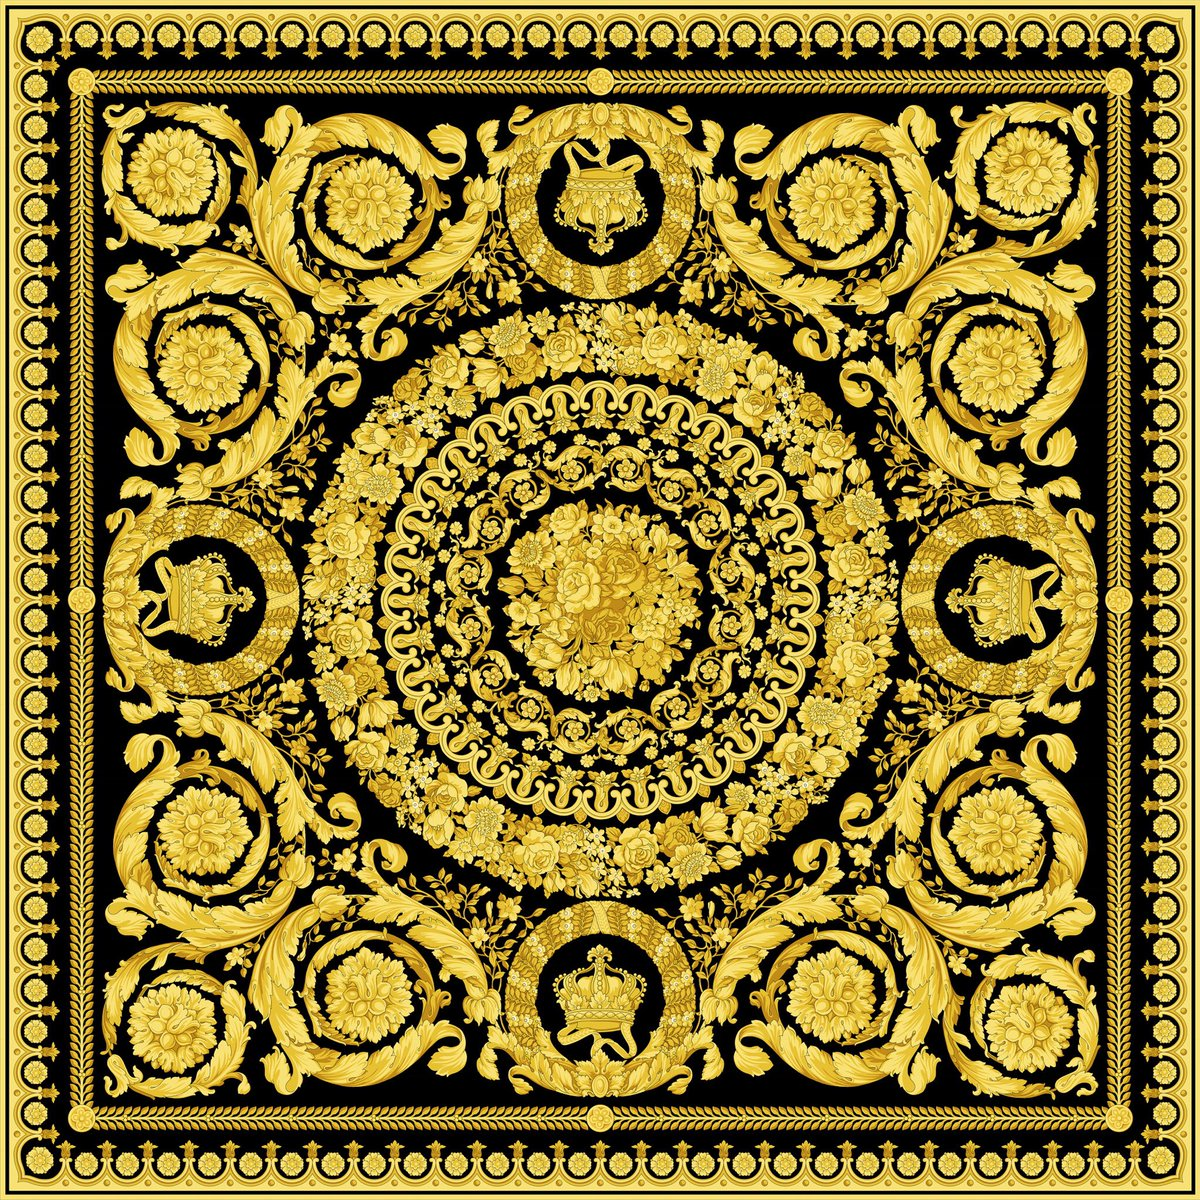 versace on twitter the versace barocco print first designed by gianni versace for the fall. Black Bedroom Furniture Sets. Home Design Ideas